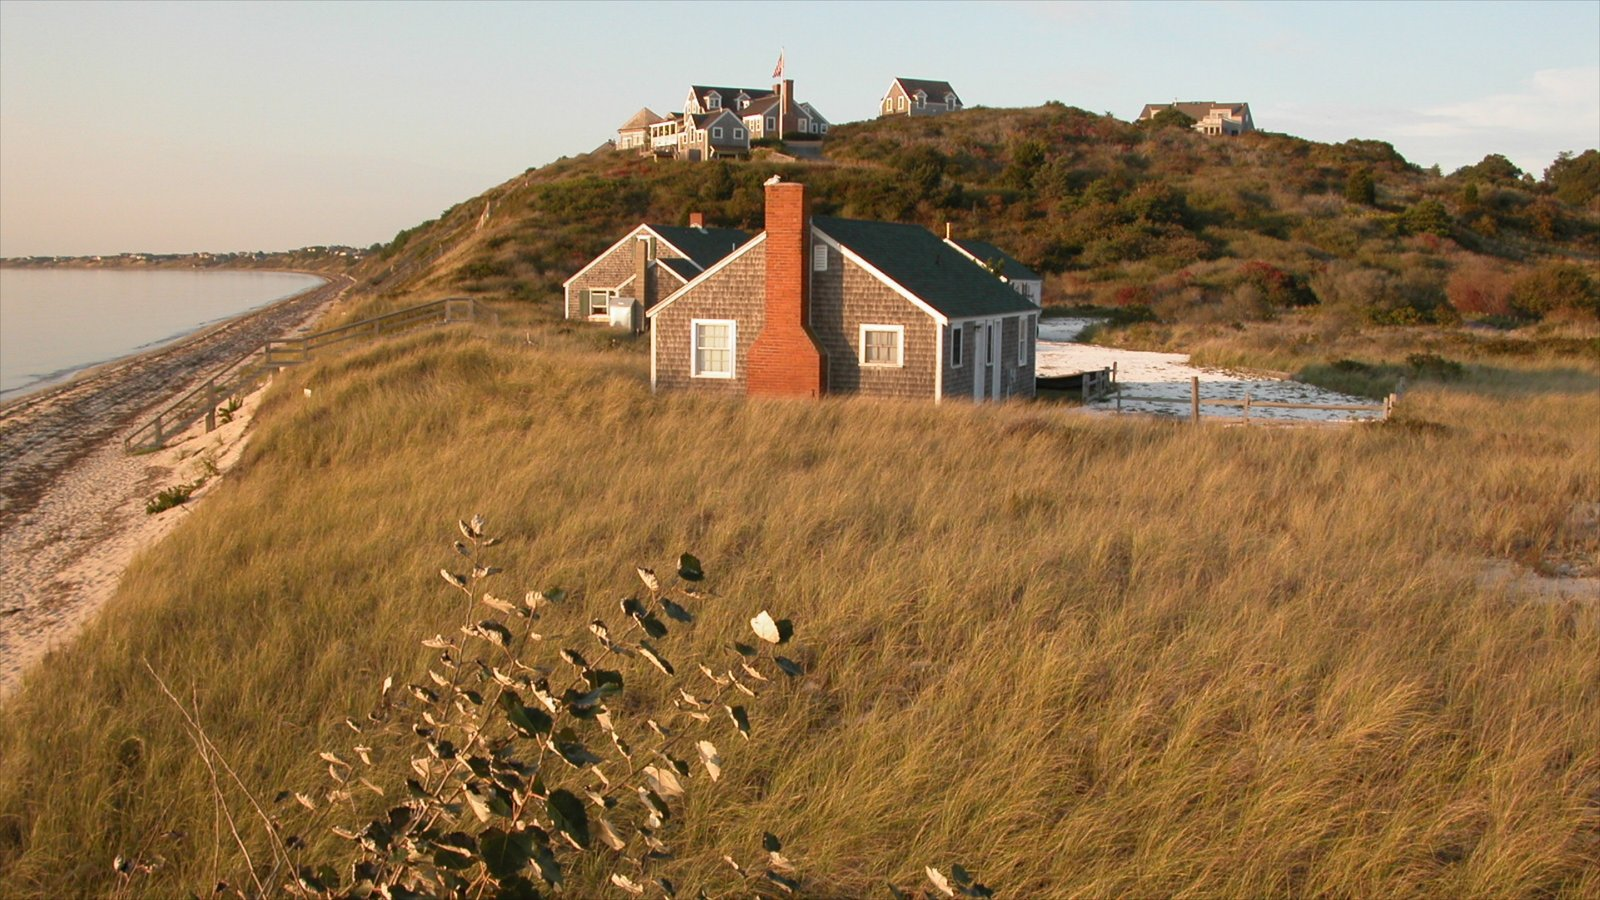 Cape Cod showing a sunset, a house and general coastal views